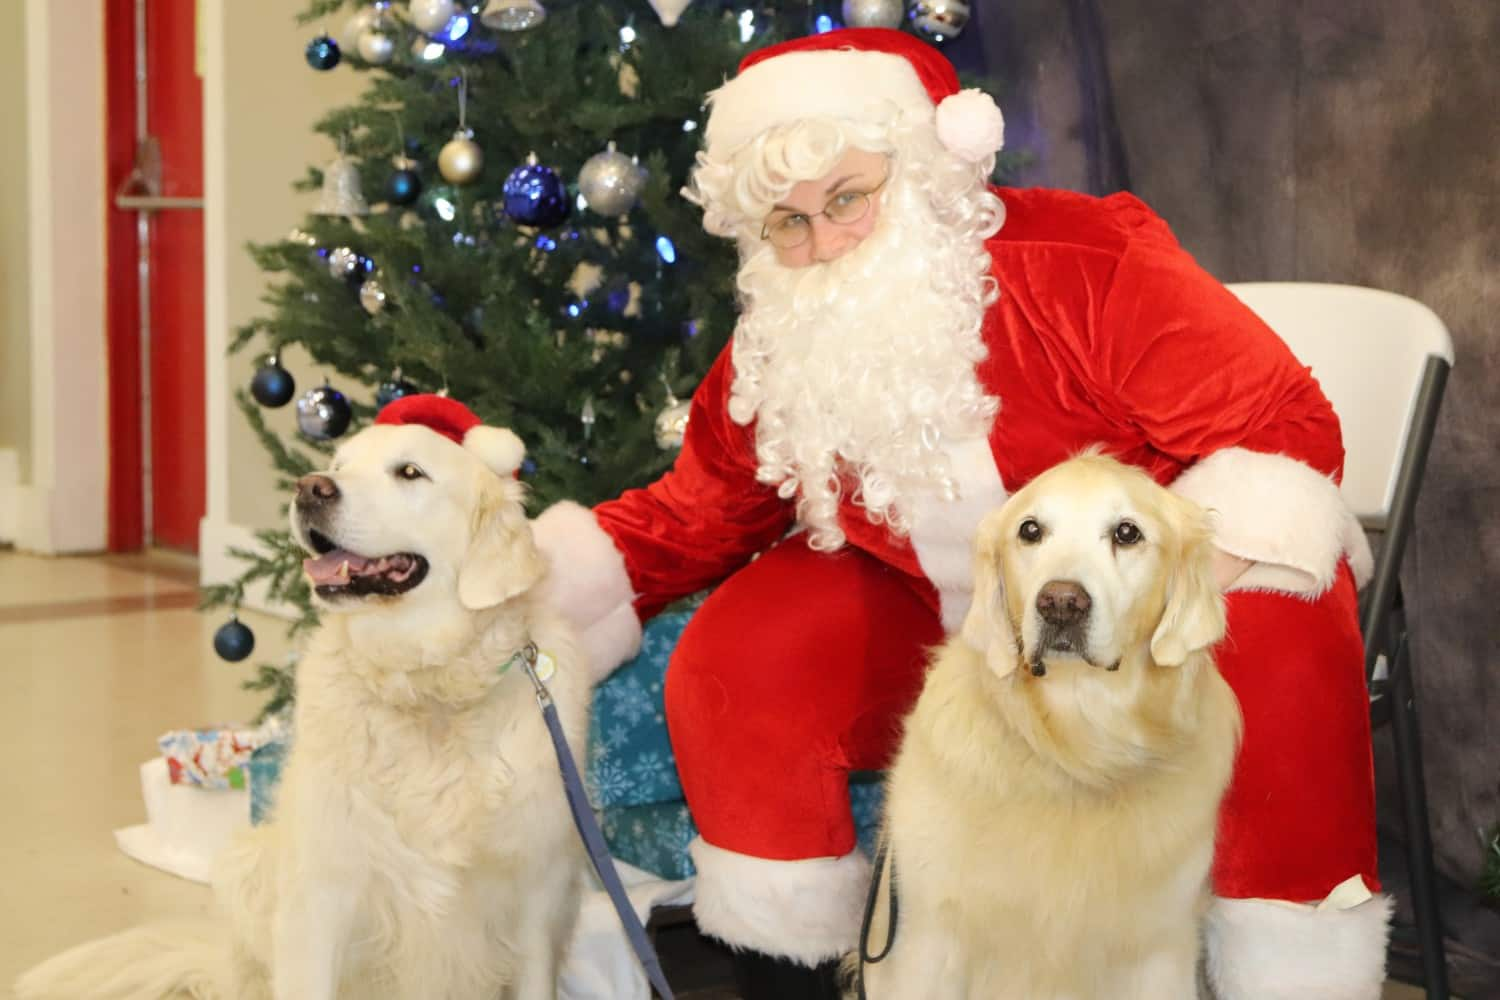 PetSmart Is Giving Away Free Photos Of Your Pet With Santa This Weekend (Dec 16-17)